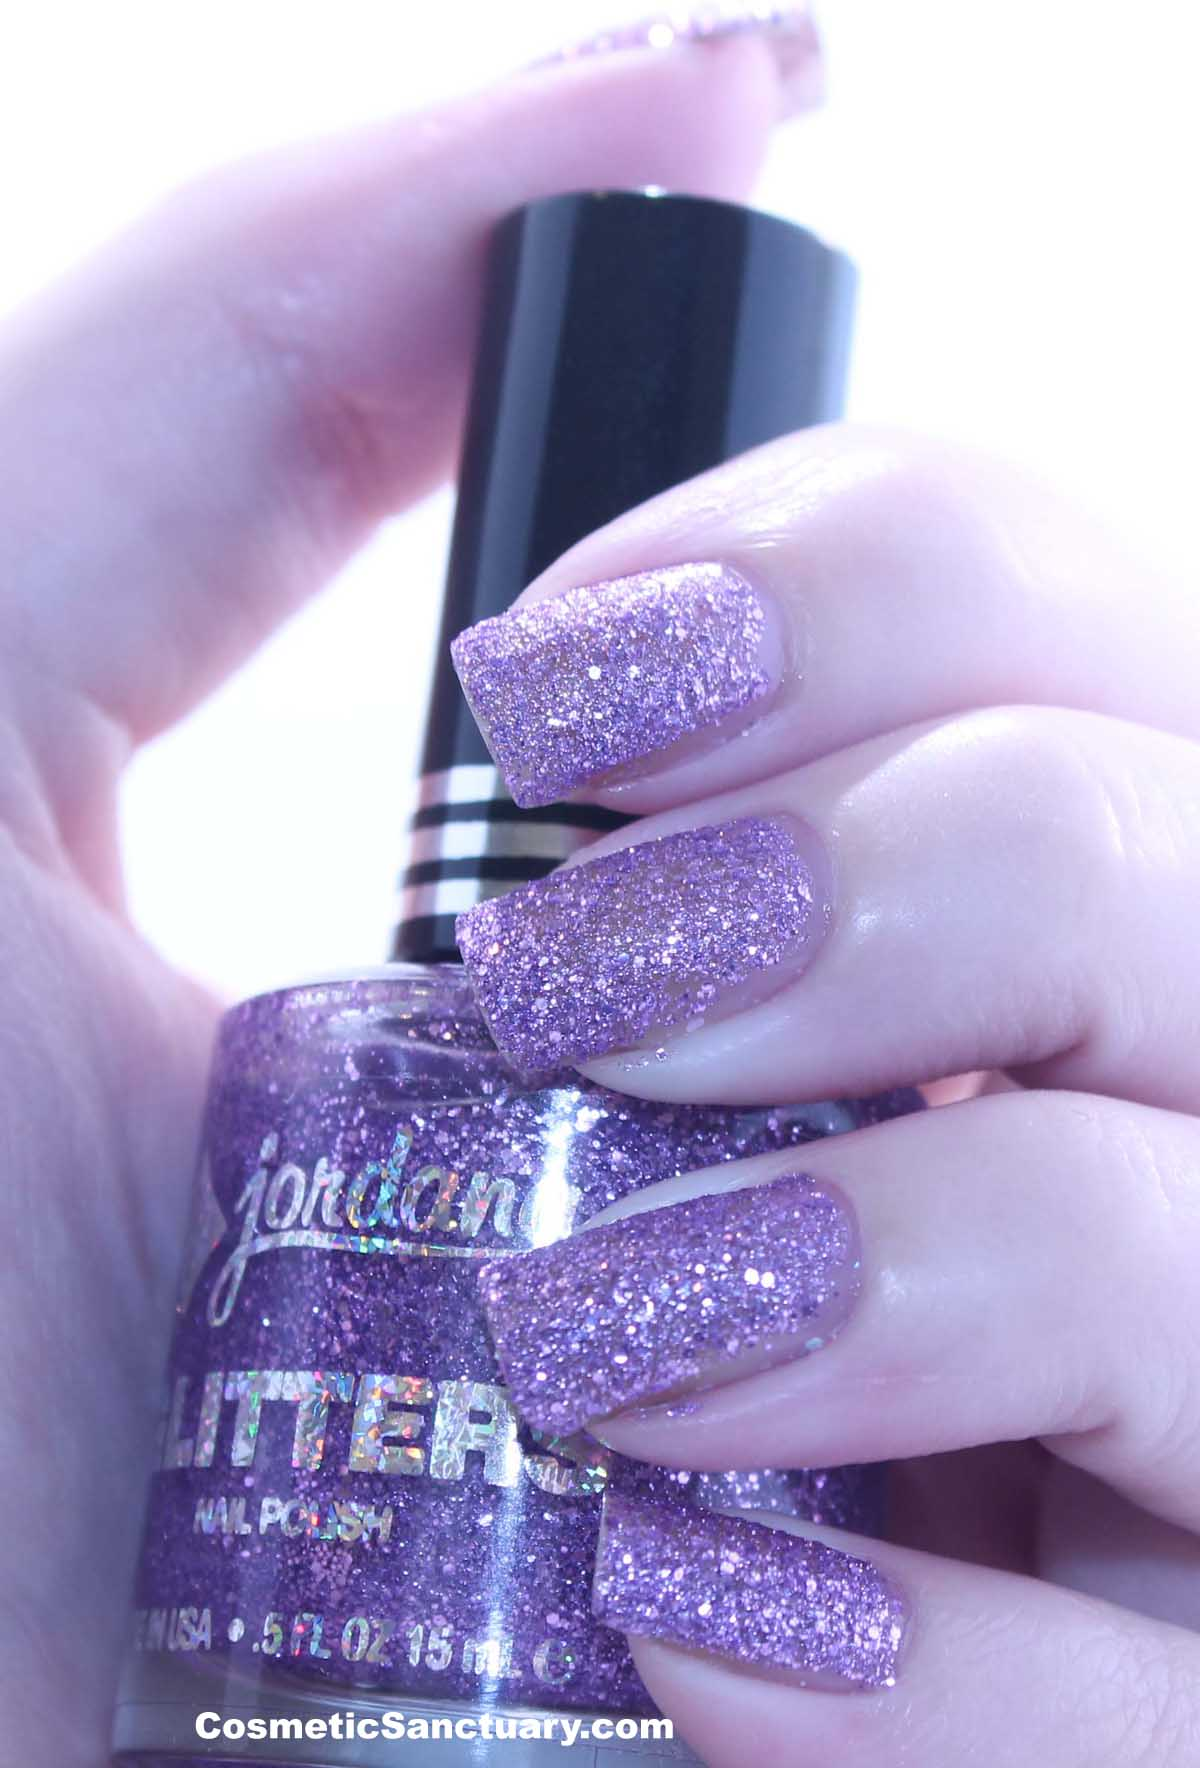 Jordana Glitters Nail Polish Reviews and Swatches